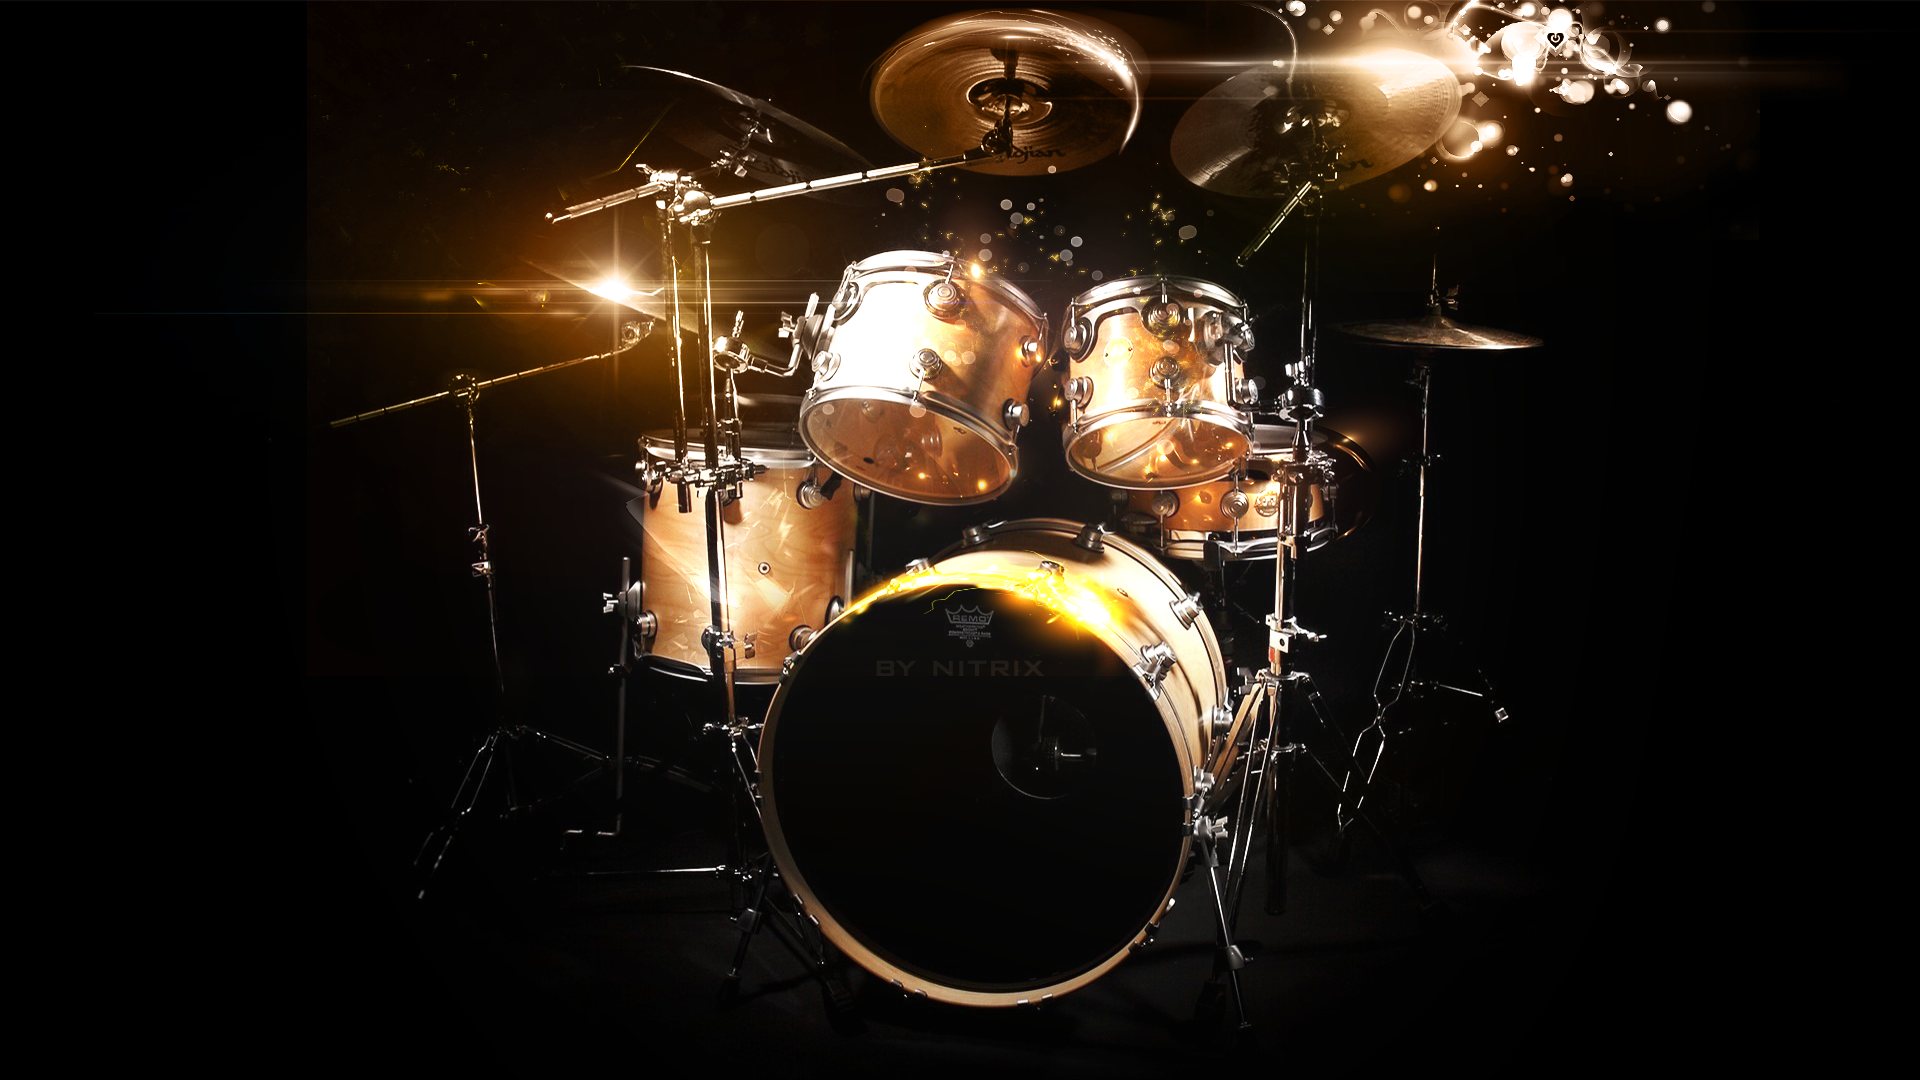 drum wallpaper for computer - photo #22